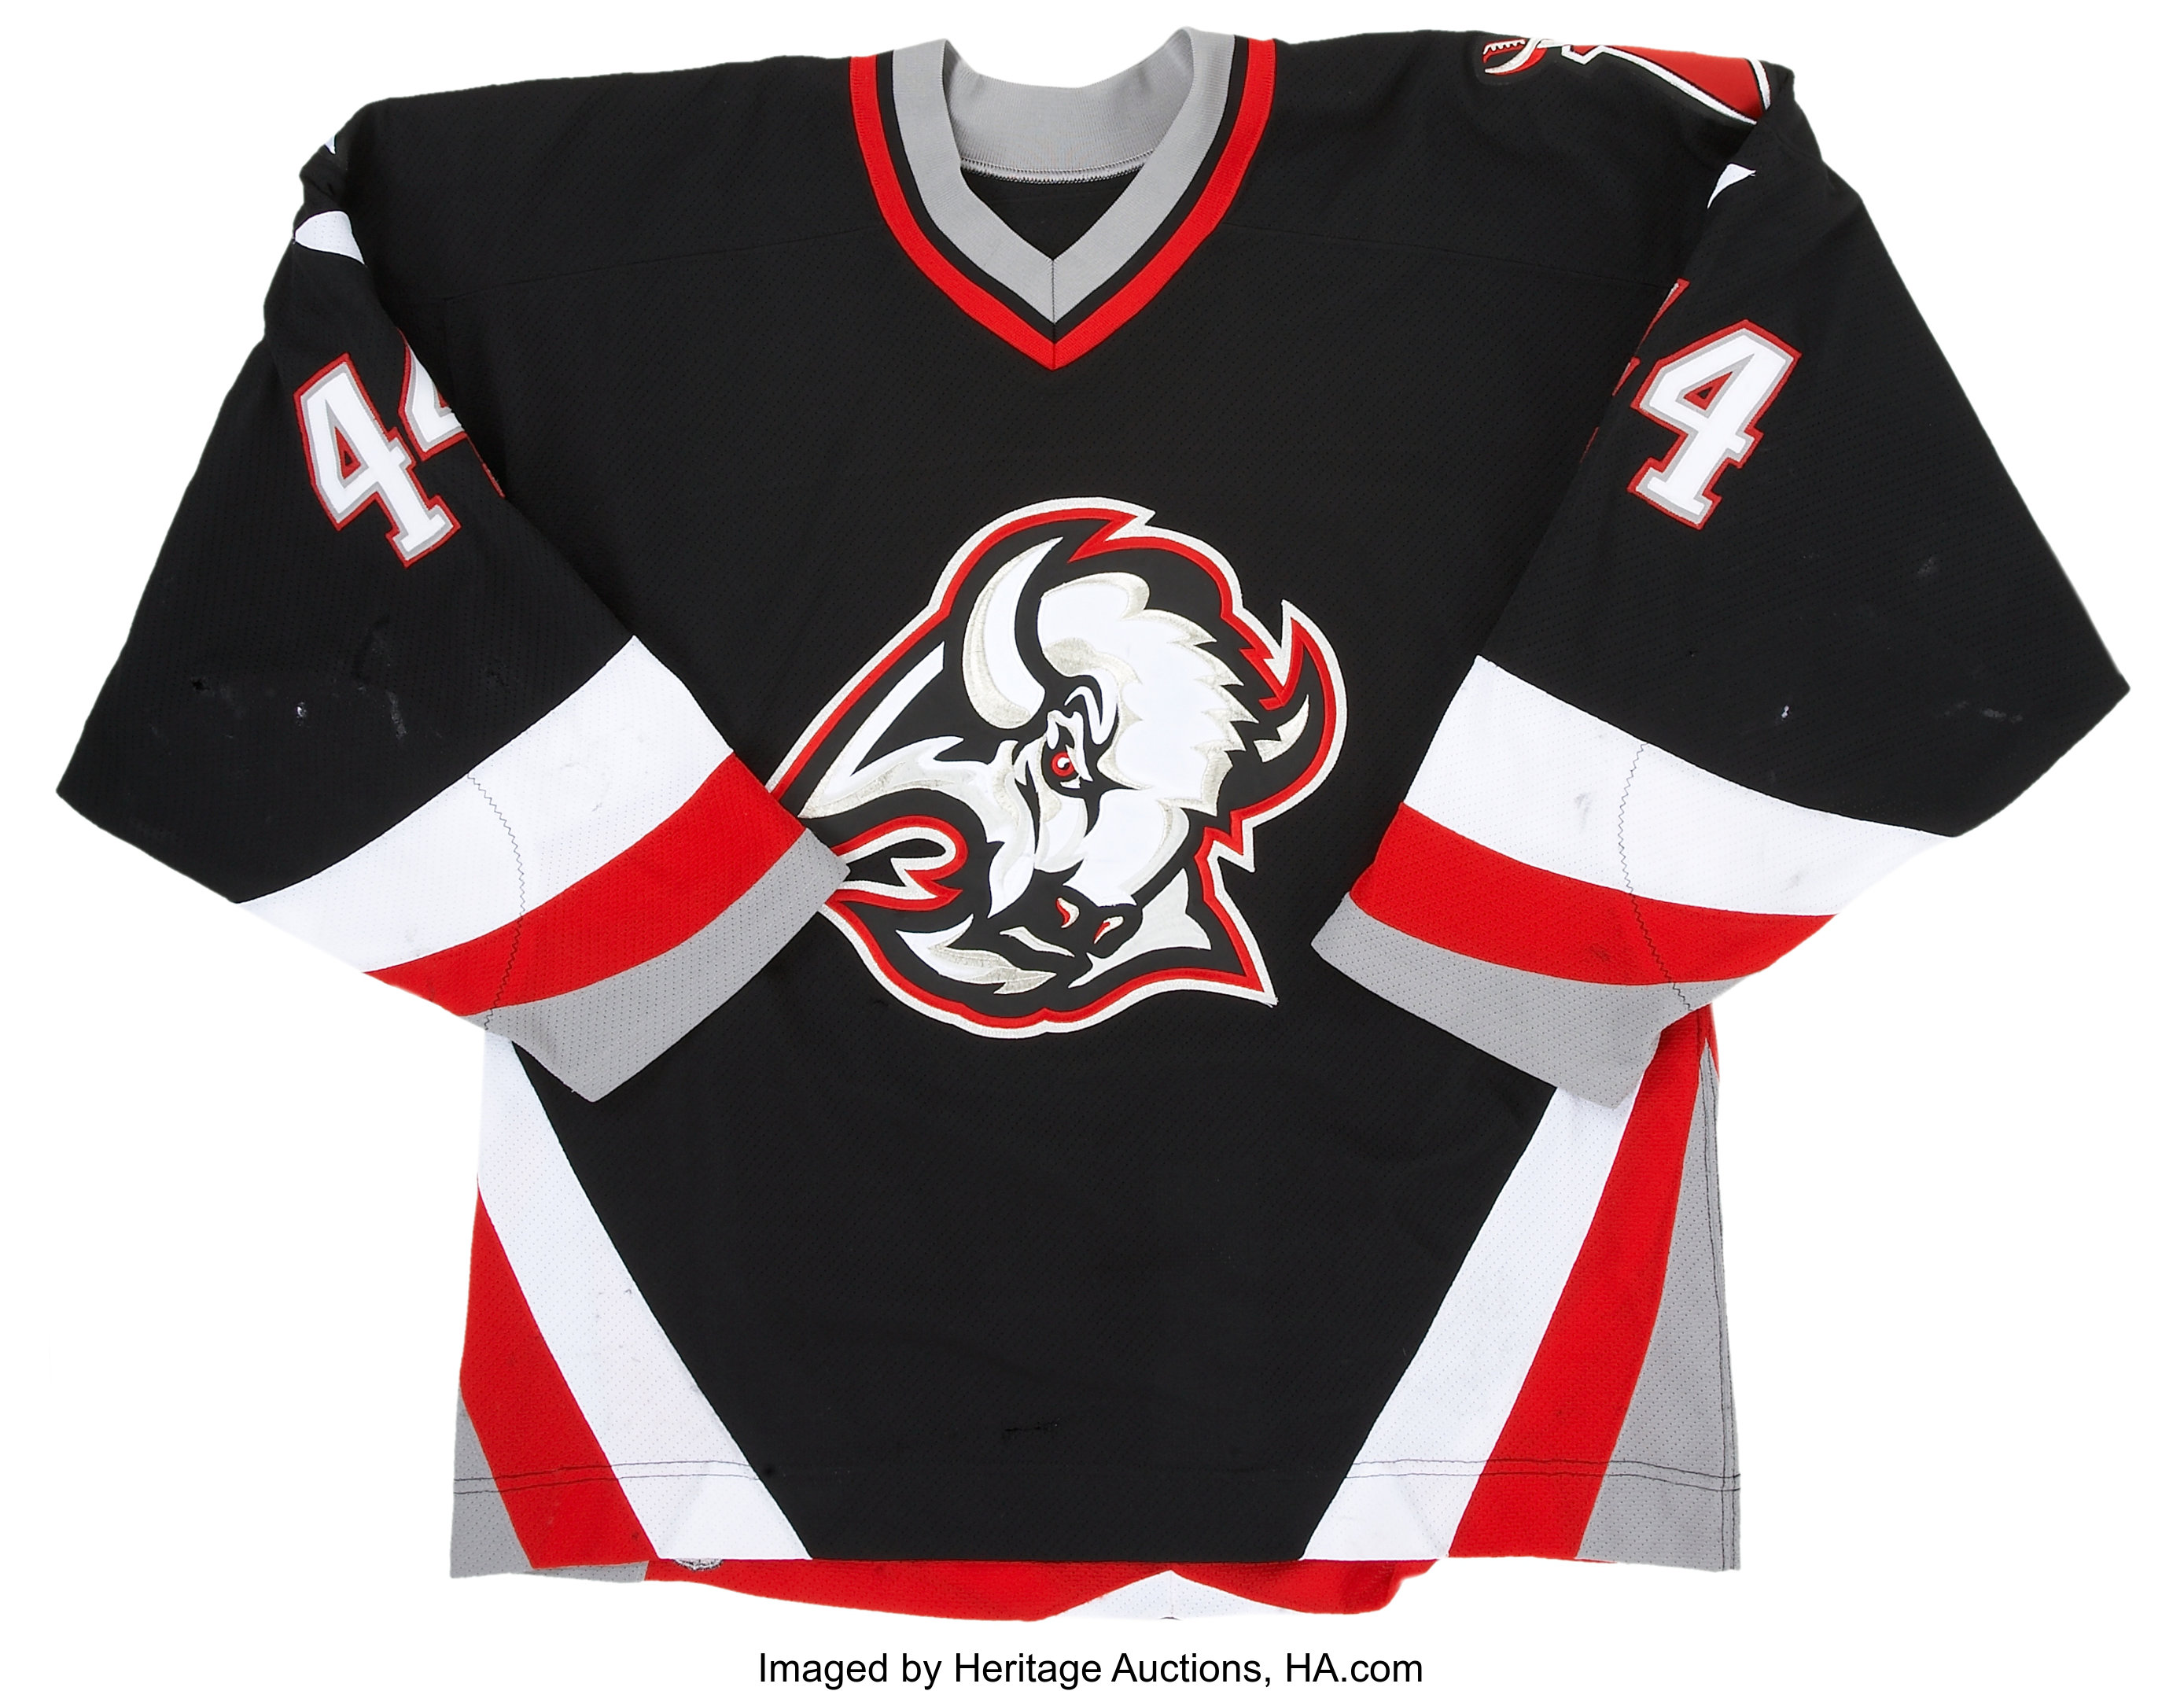 the best attitude 469f1 7081d 2002-03 Alexei Zhitnik Buffalo Sabres Game Worn Jersey ...